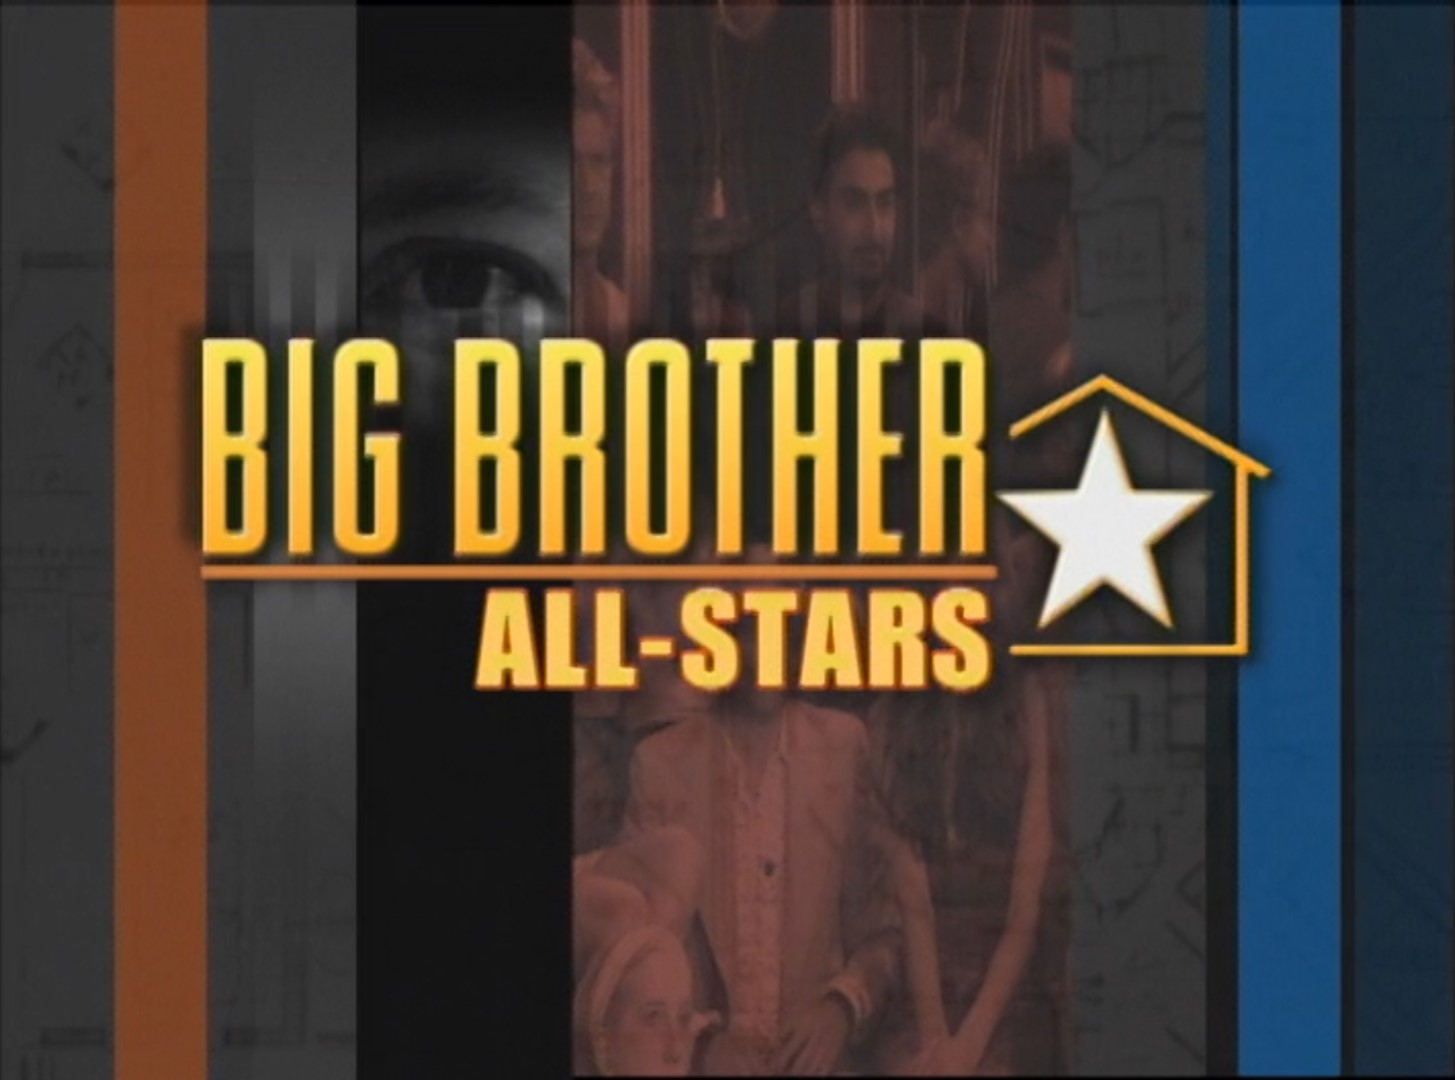 Big Brother 7 (US)